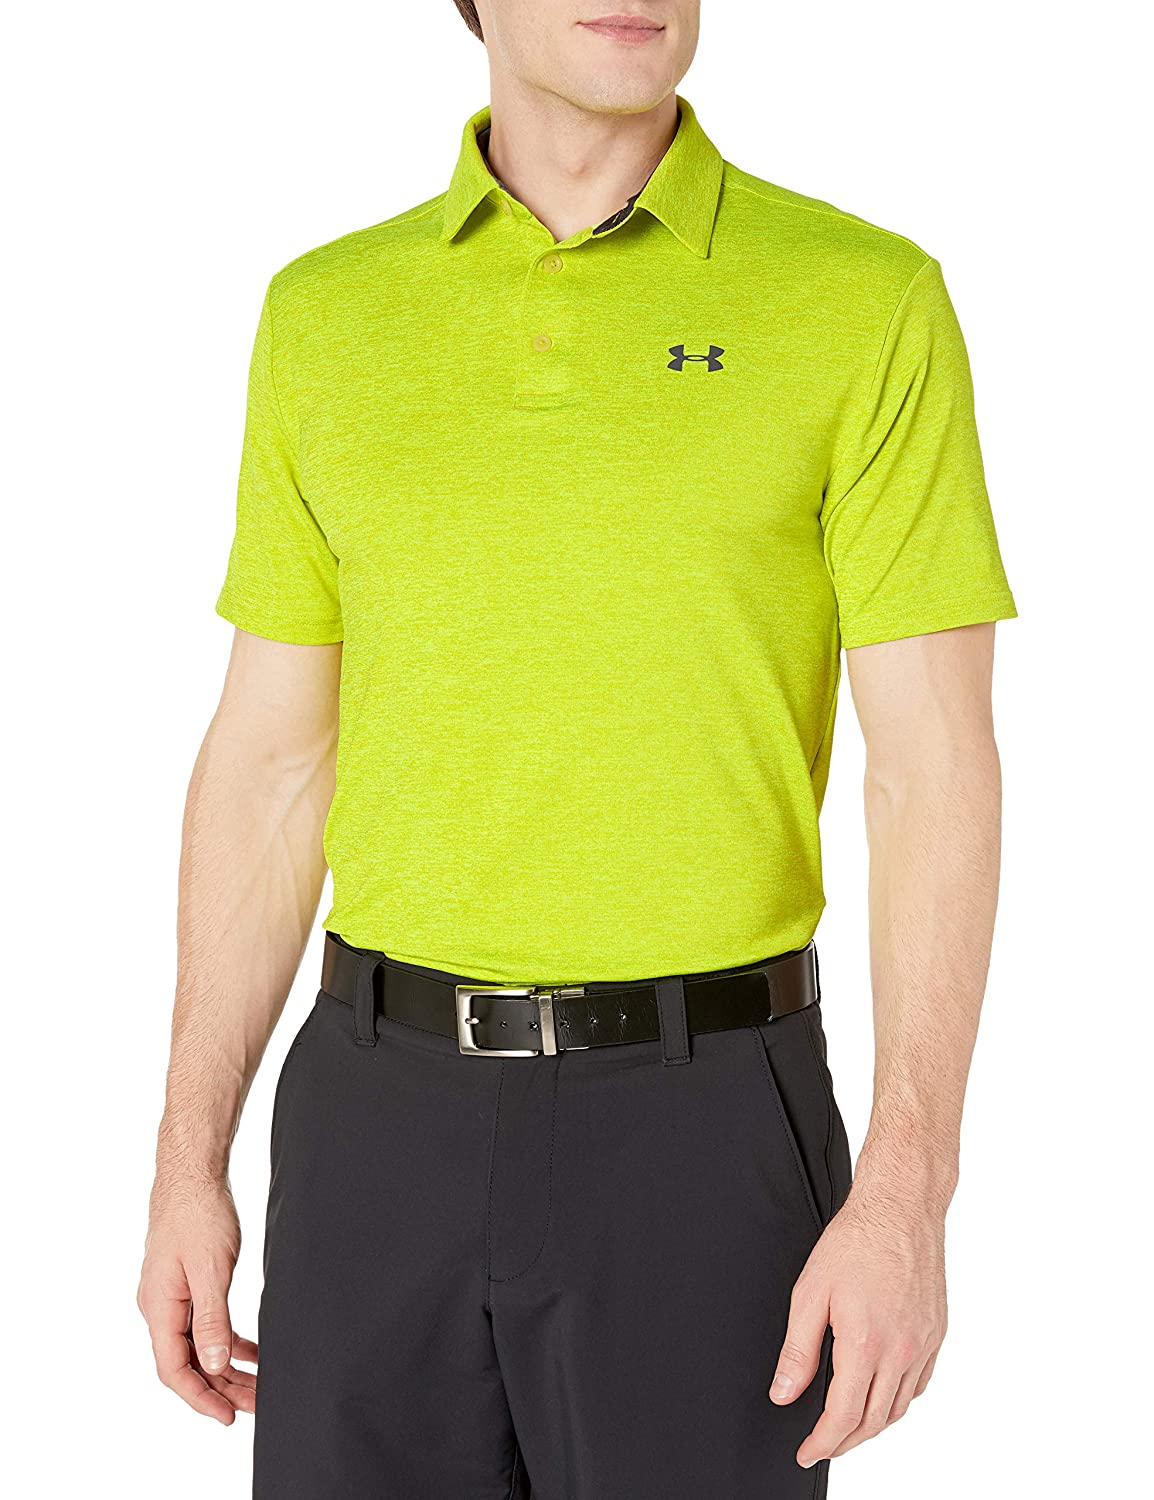 Under Armour Playoff Polo 2.0 - Polo Hombre: Amazon.es: Deportes y ...